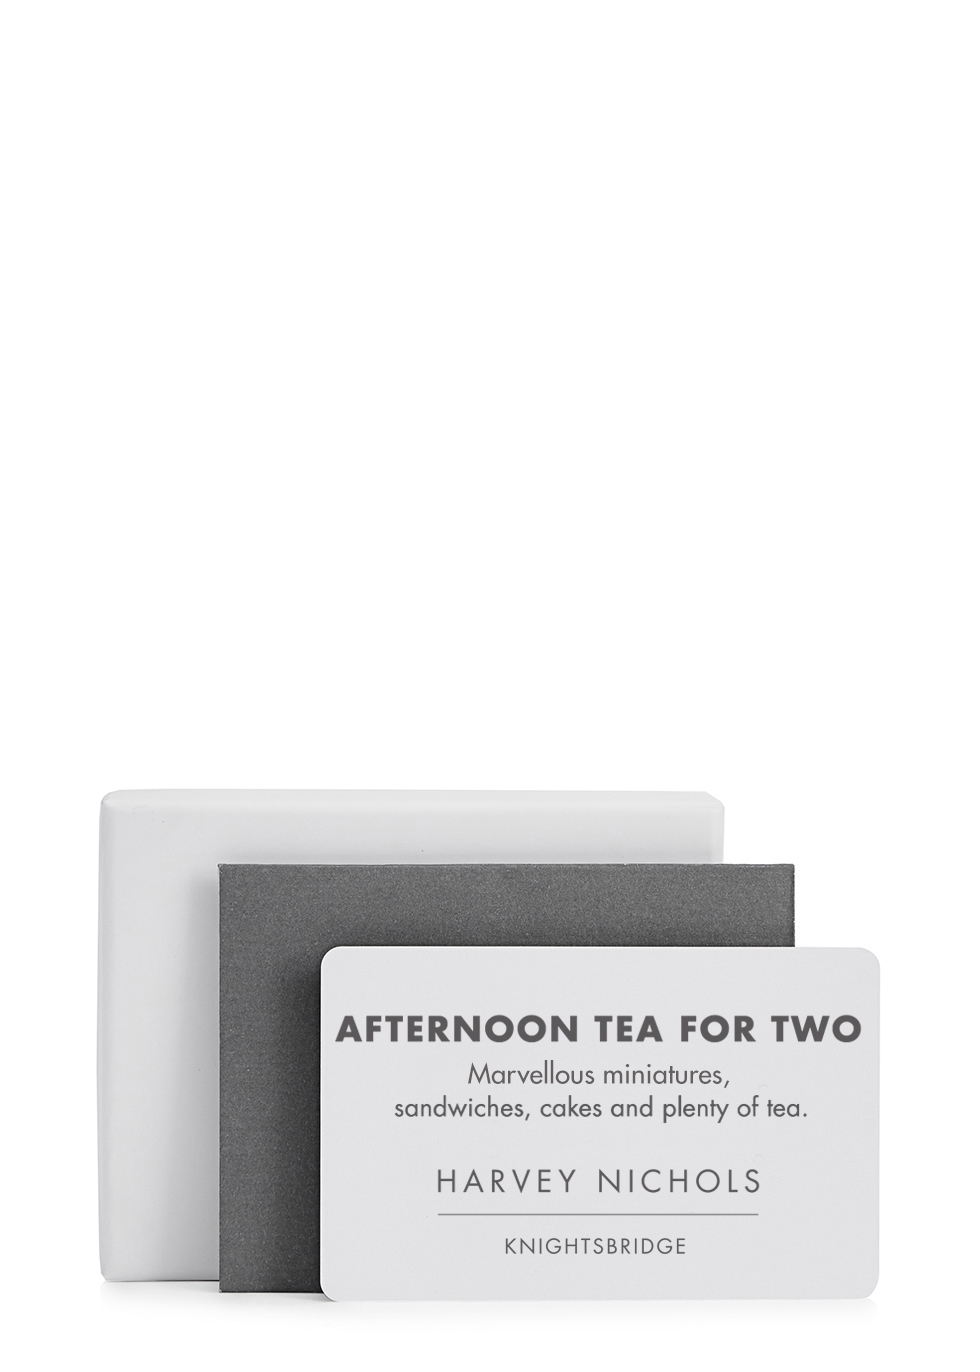 Afternoon Tea For Two - Knightsbridge - Gift Experiences